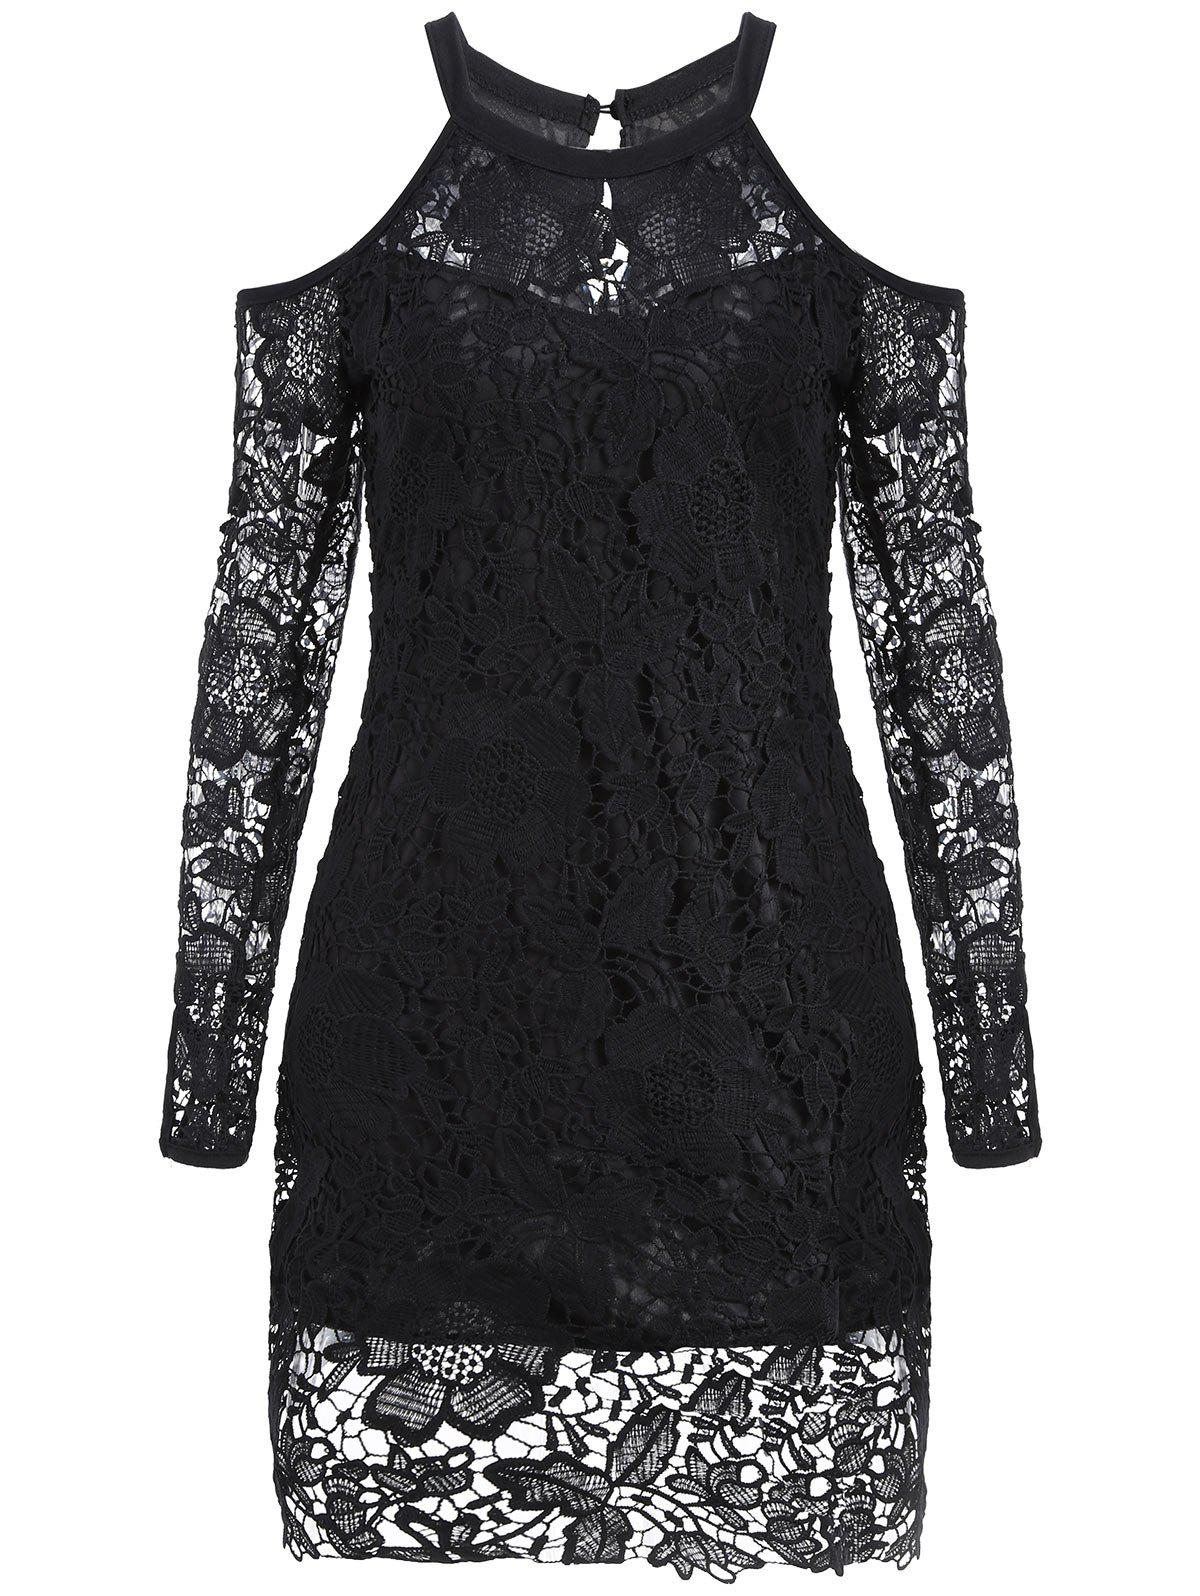 New Cold Shoulder Long Sleeve Lace Bodycon Dress